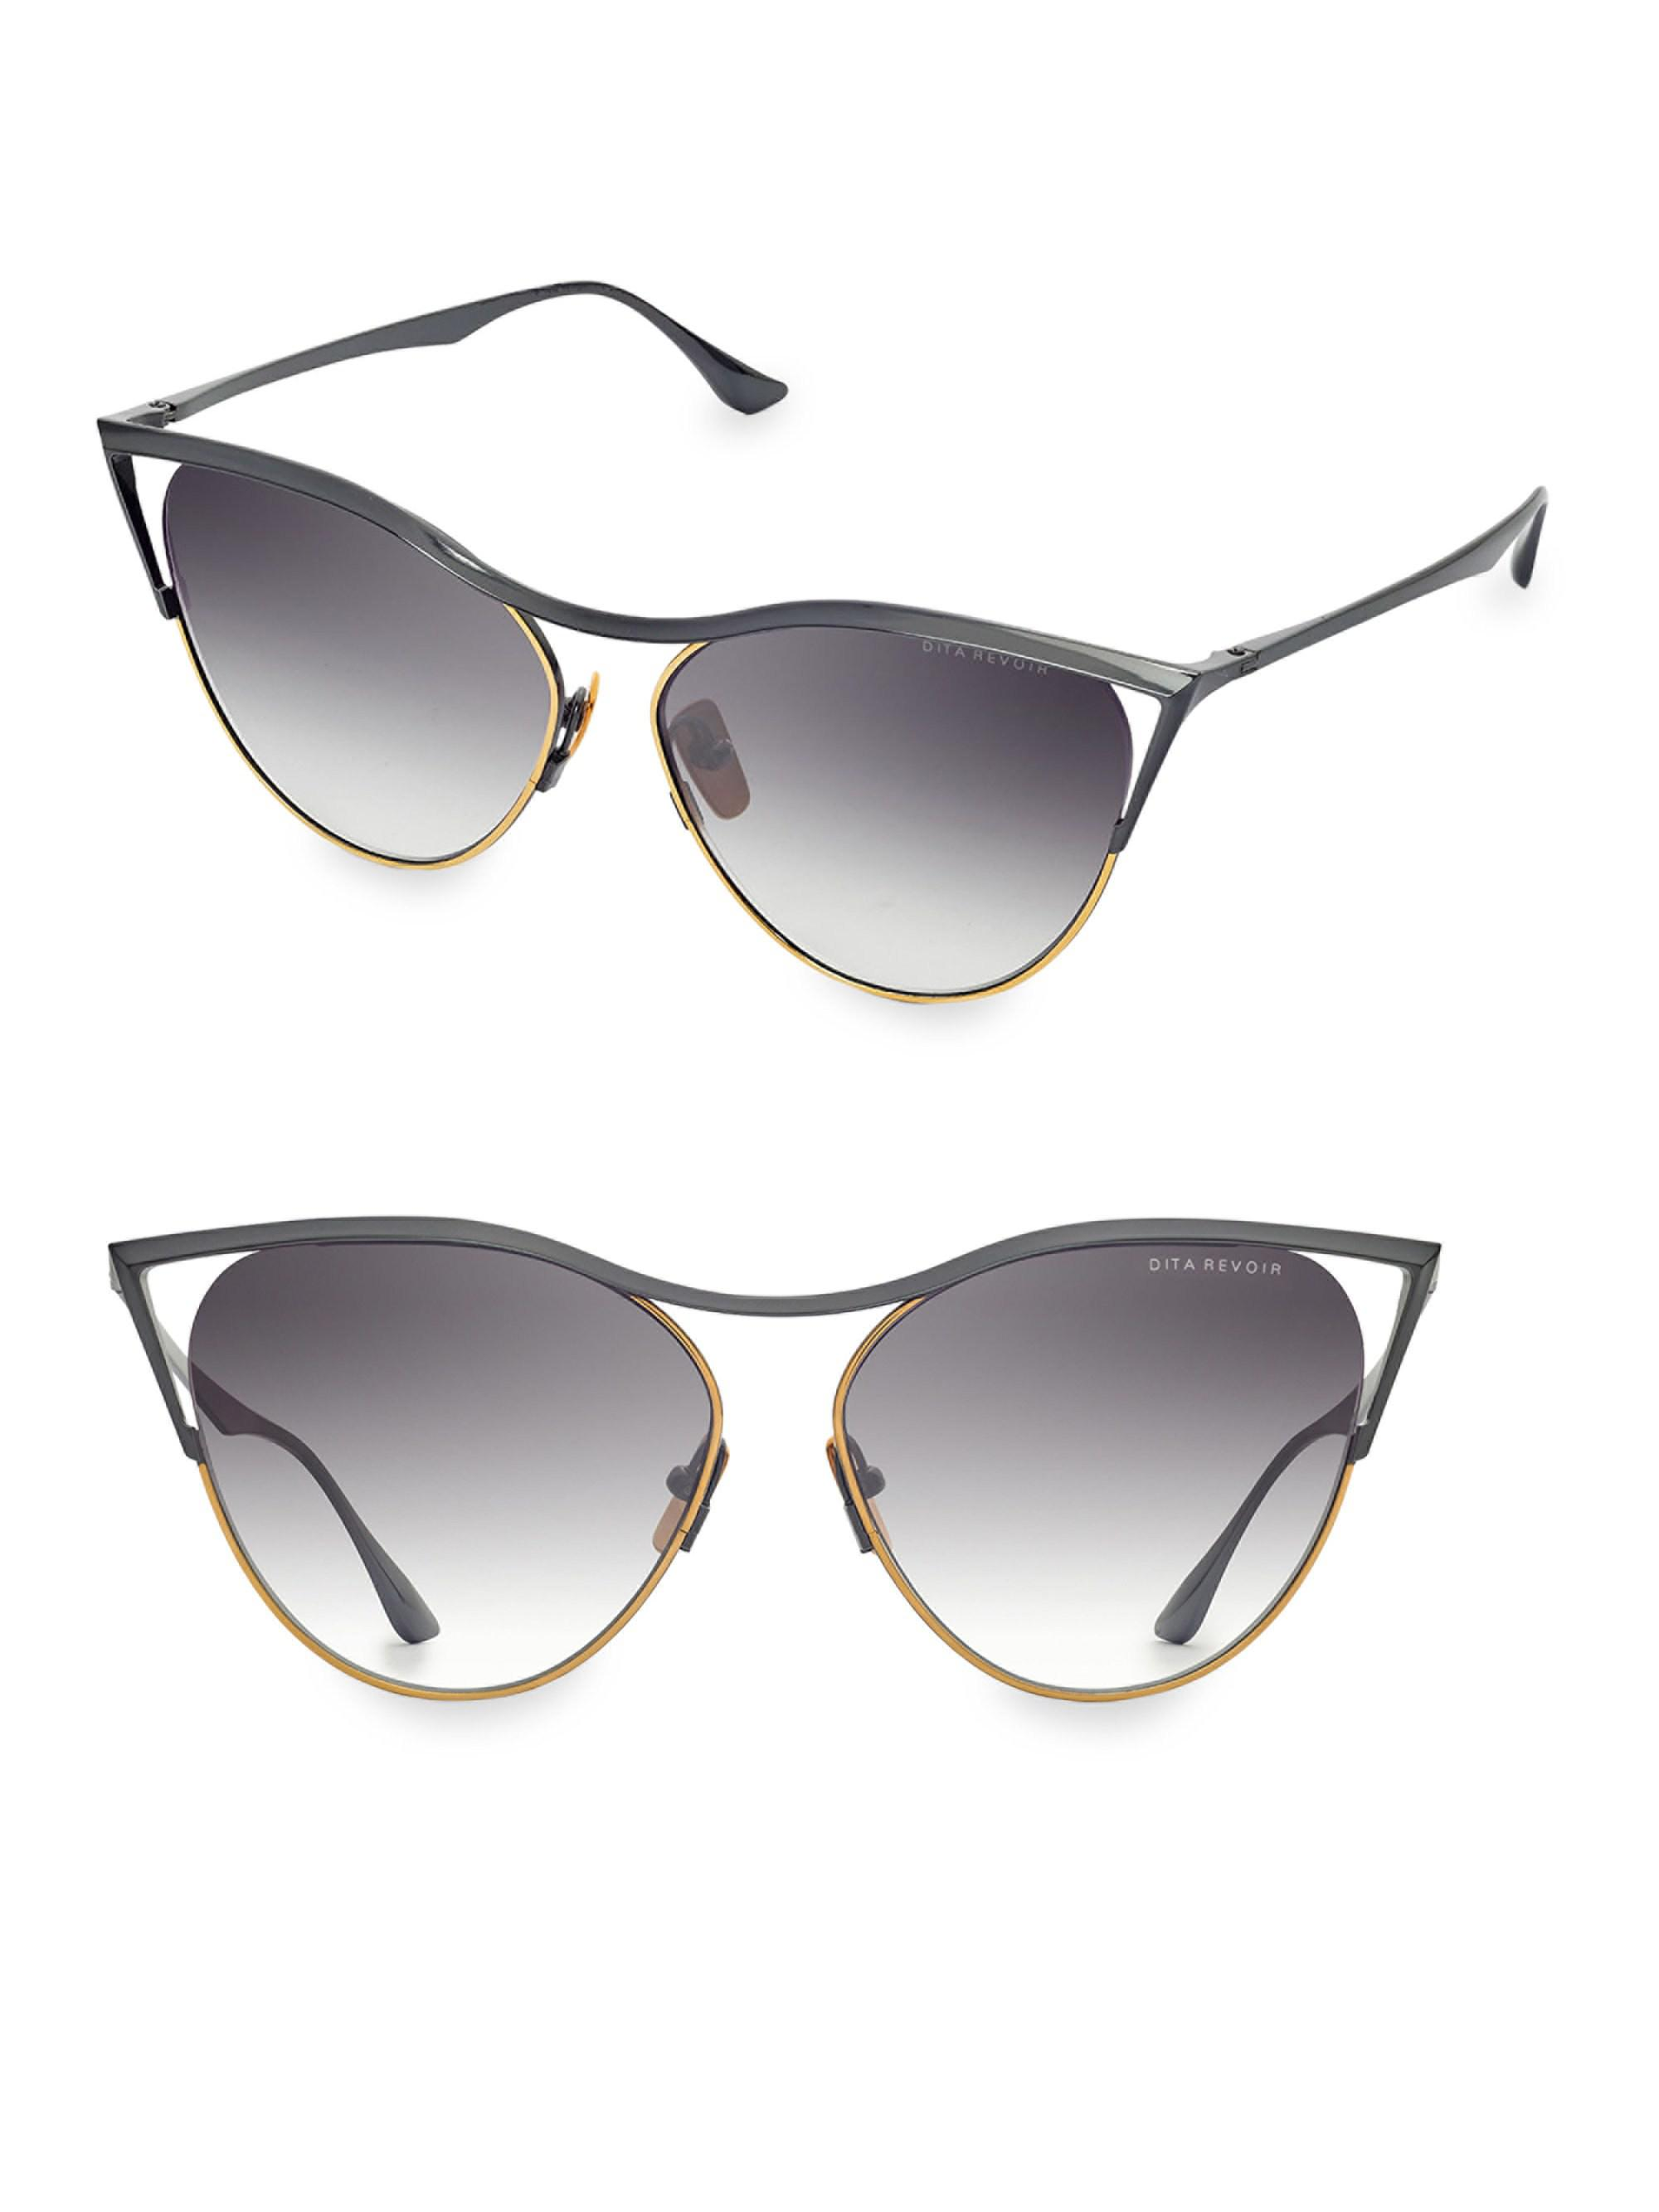 f8a24bdf0fb Dita Eyewear Revoir 59mm Cat-eye Sunglasses in Gray - Lyst